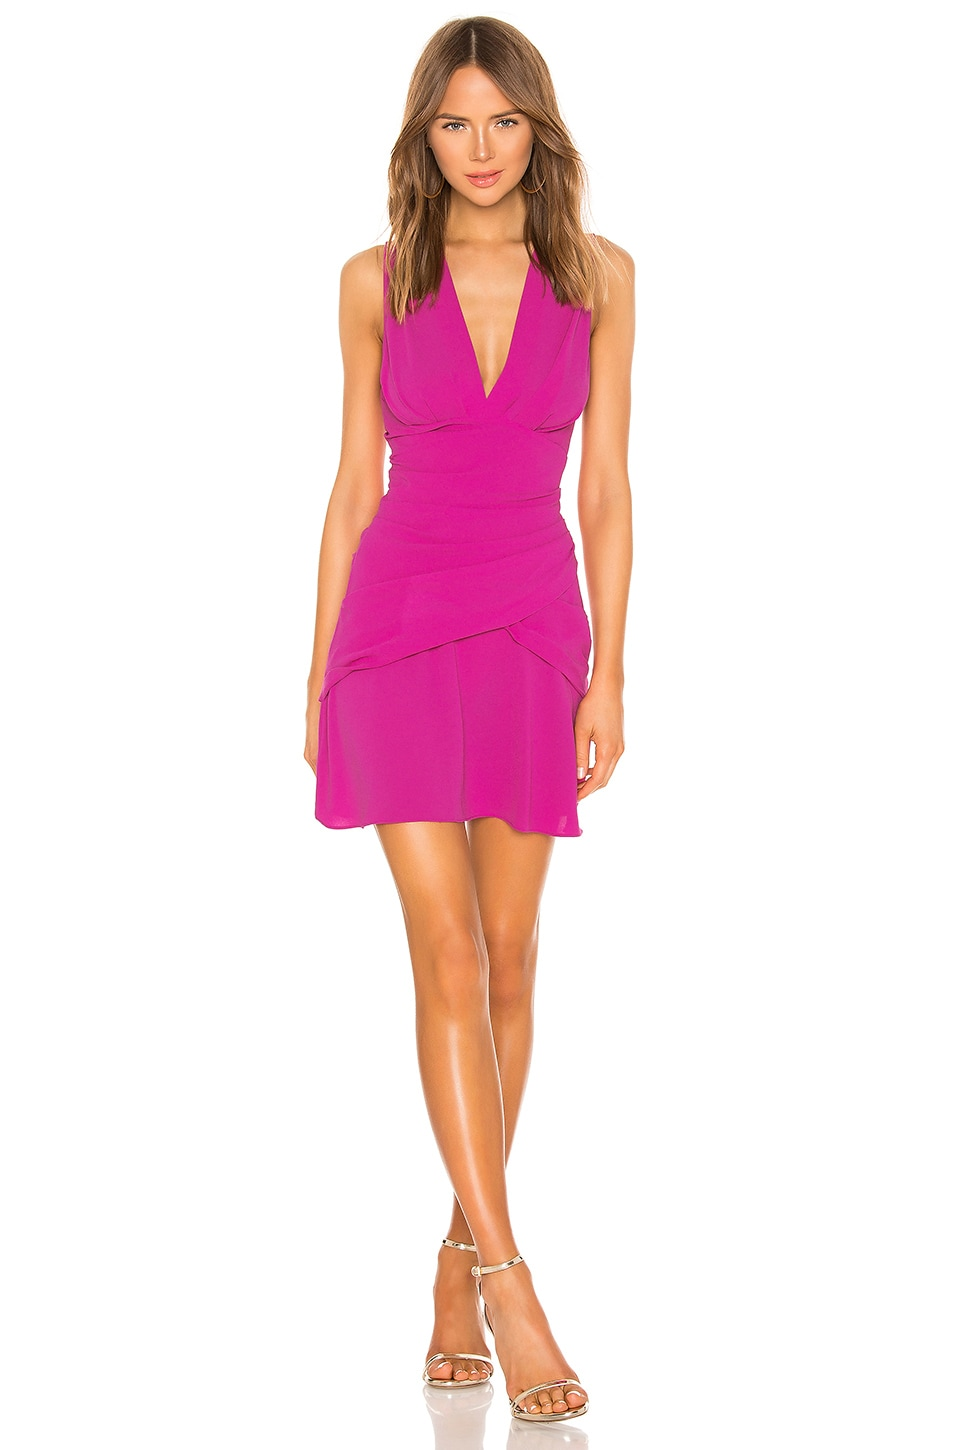 IRO Venue Dress in Fuchsia